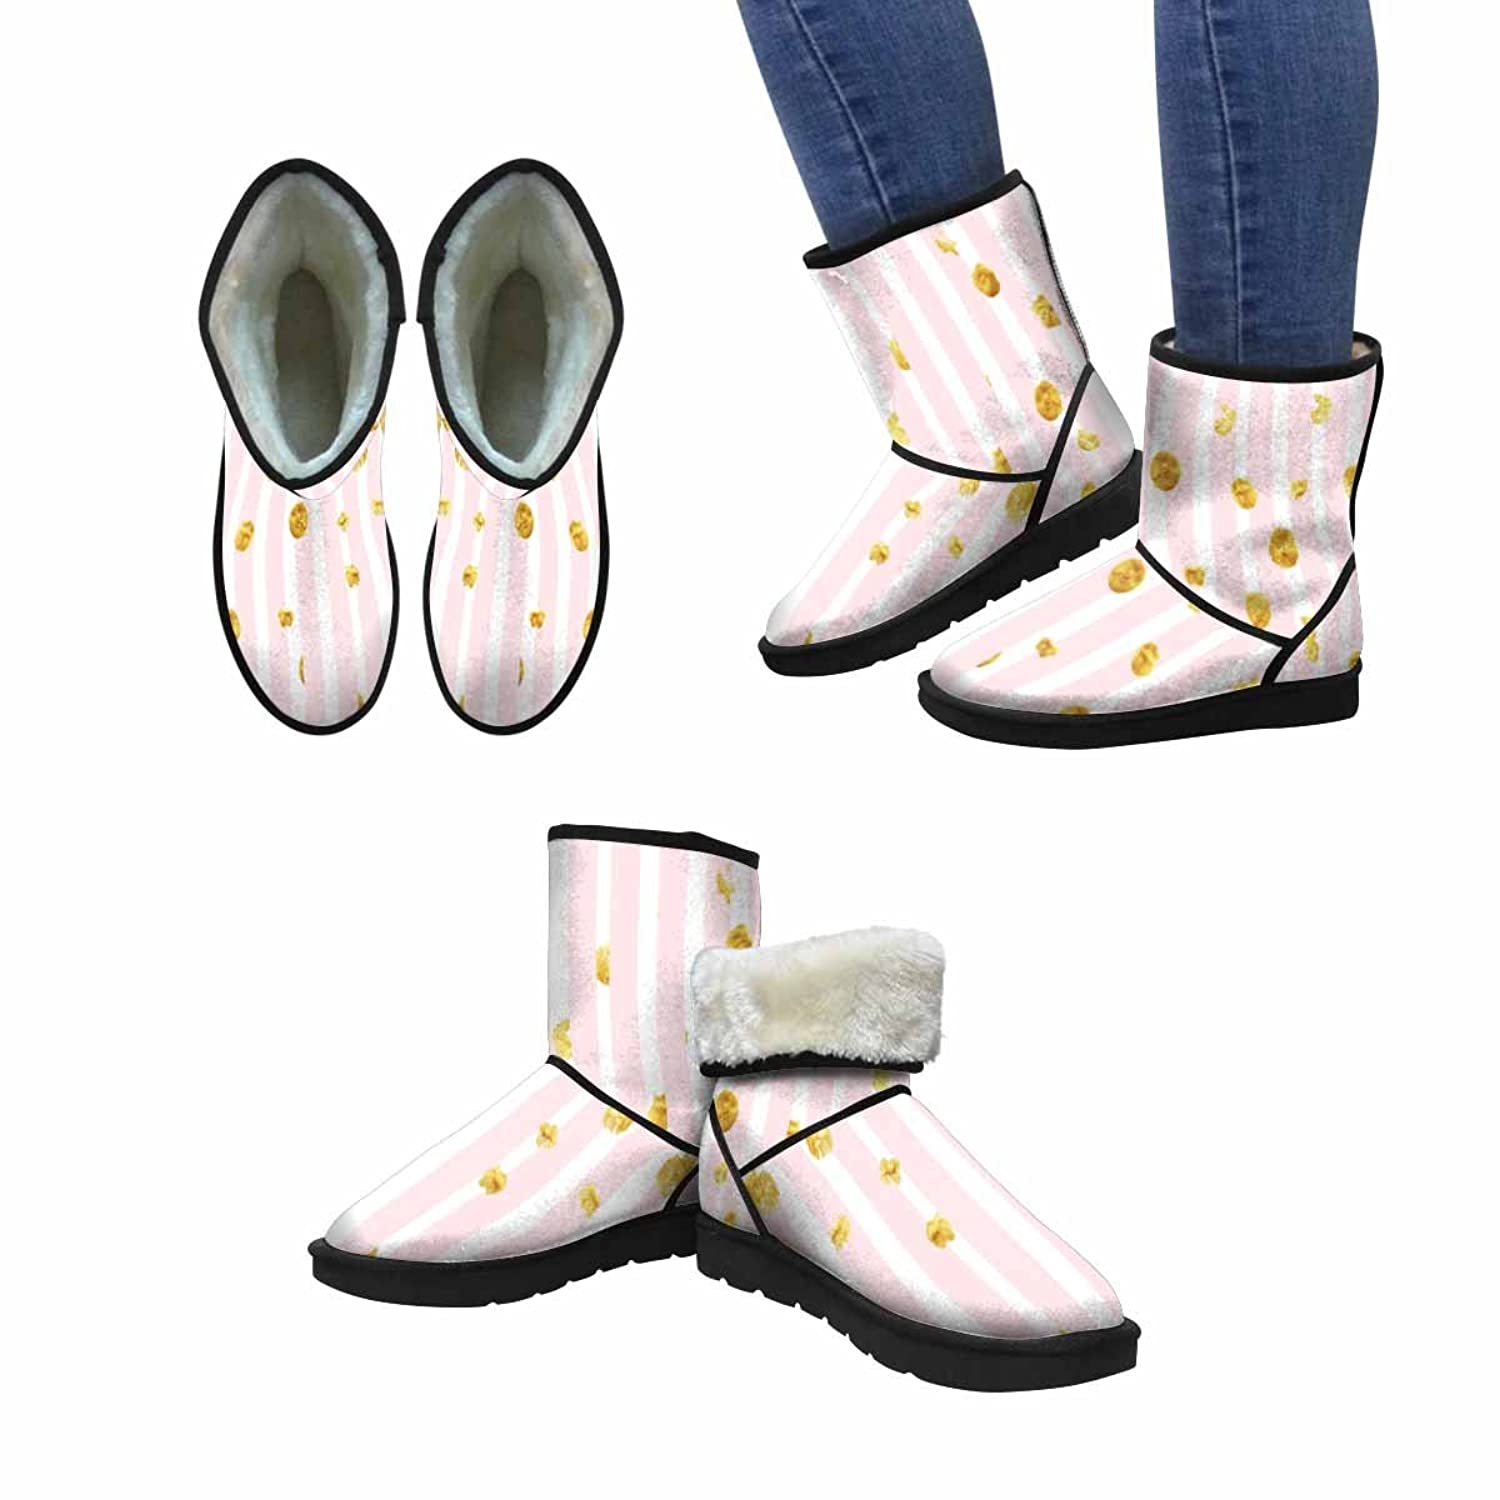 InterestPrint Women's Snow Boots Pink Stripes and Gold Dots Pattern Unique Designed Comfort Winter Boots